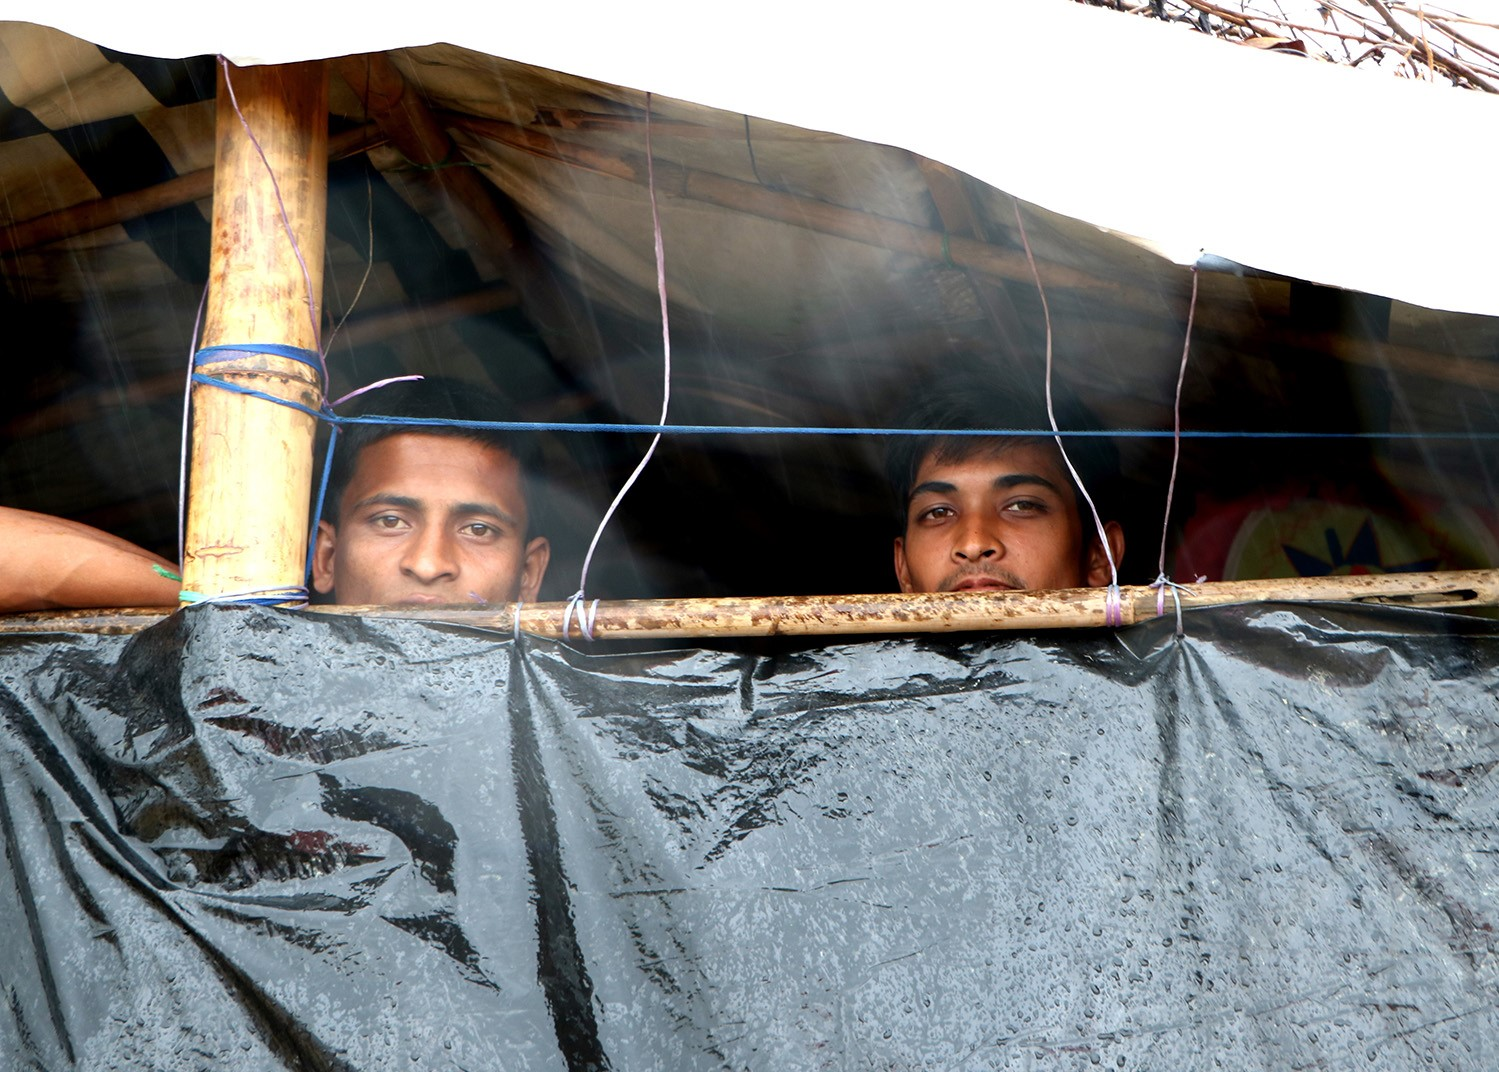 Refugees look through a gap in their shelter in Cox's Bazar, Bangladesh.